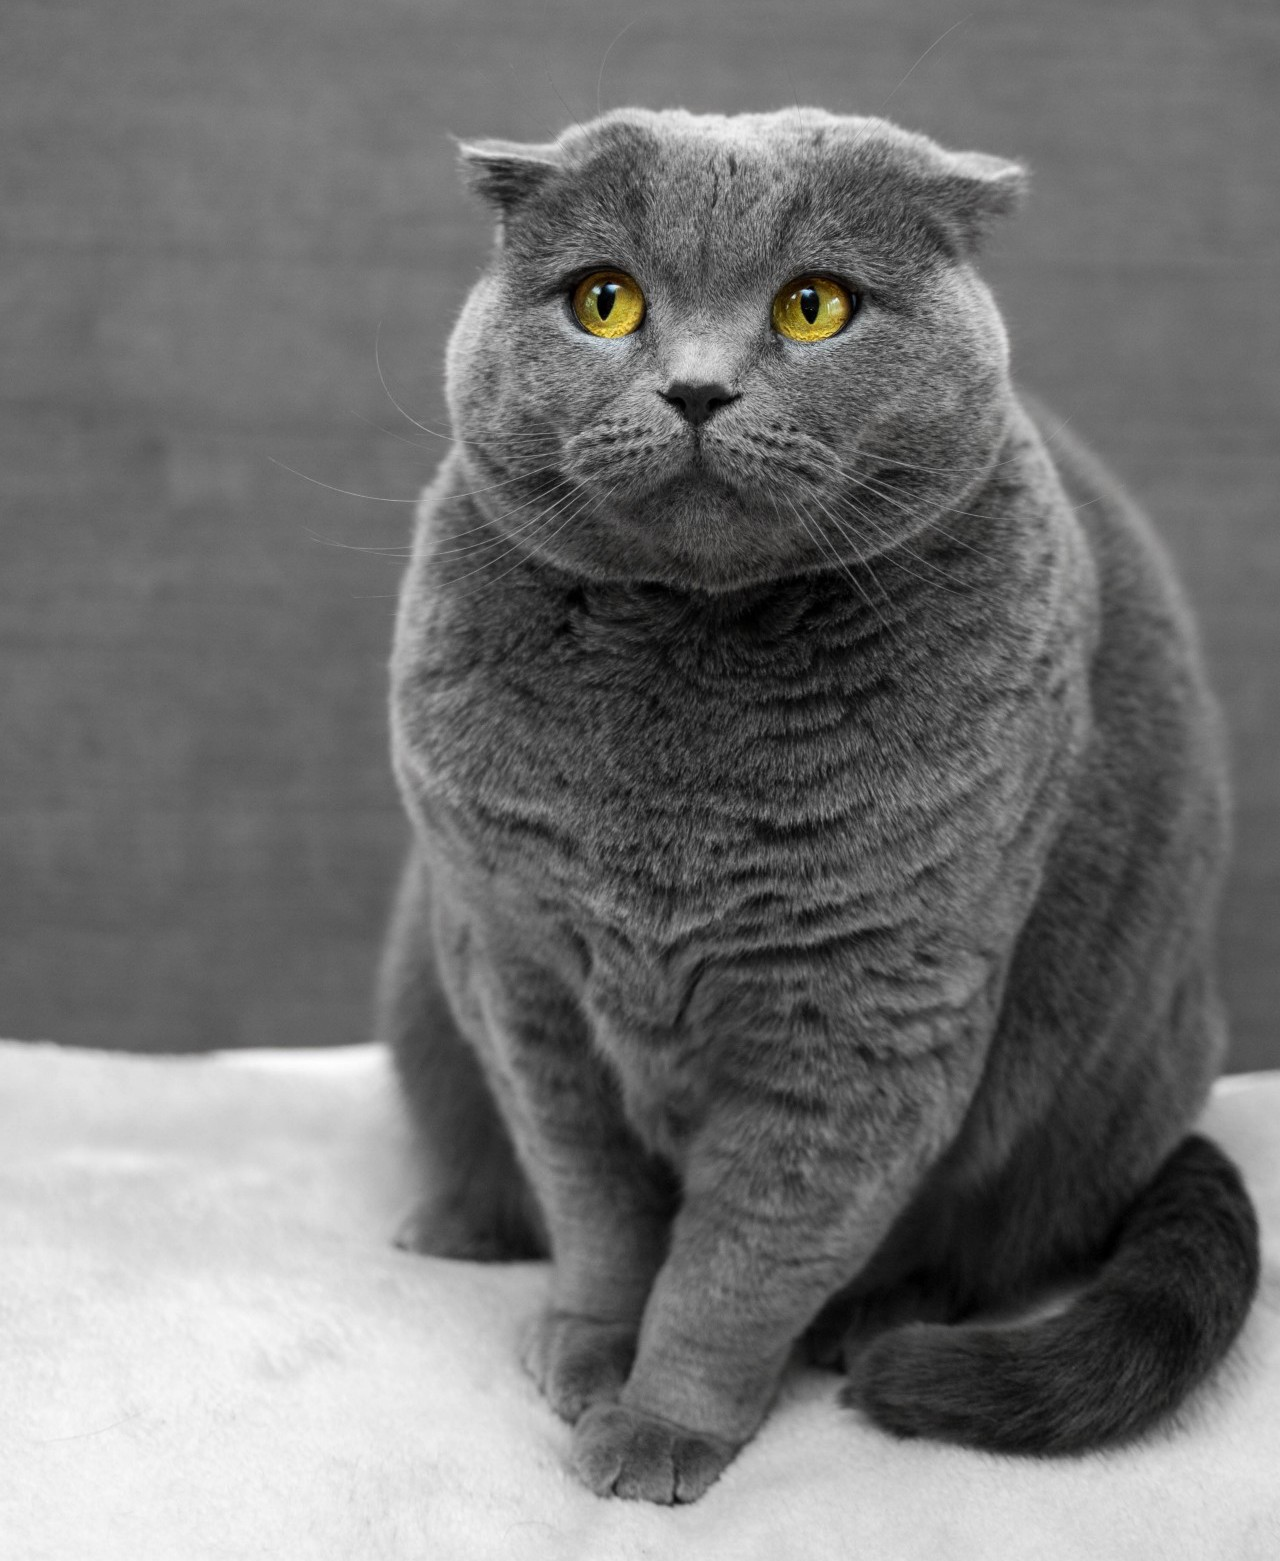 Gray cat with yellow eyes and an apprehensive look on her face. Ms. Communication.